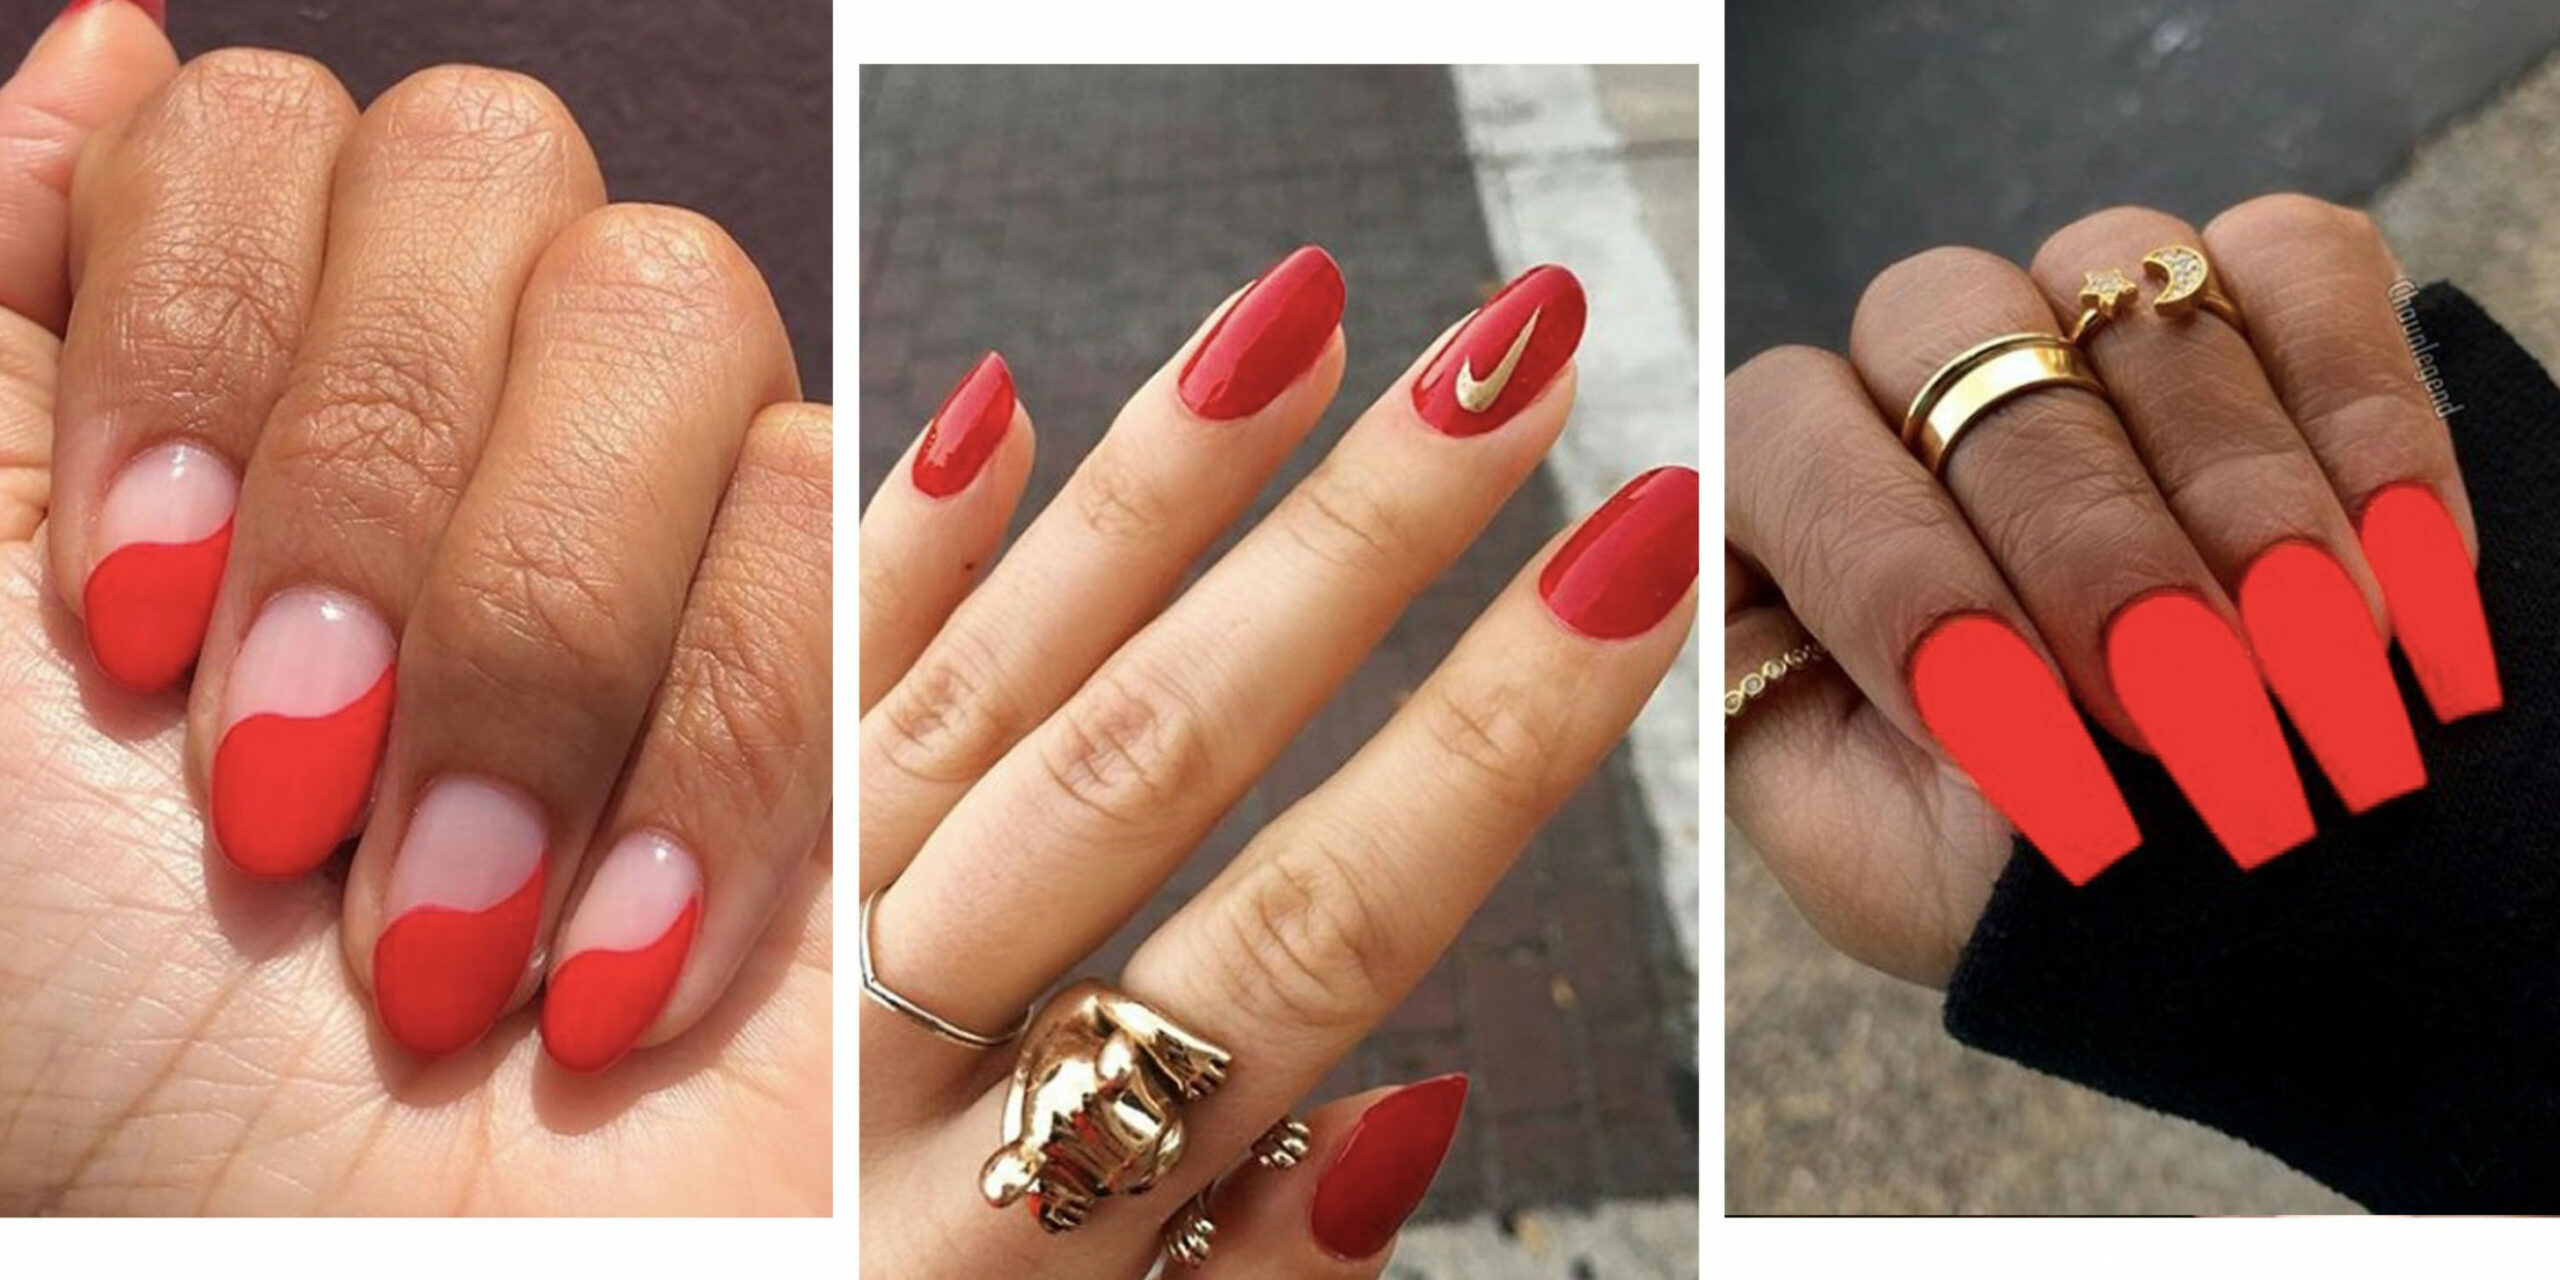 Red Nails - 10 Red Nail Art Designs That Are Anything But Boring